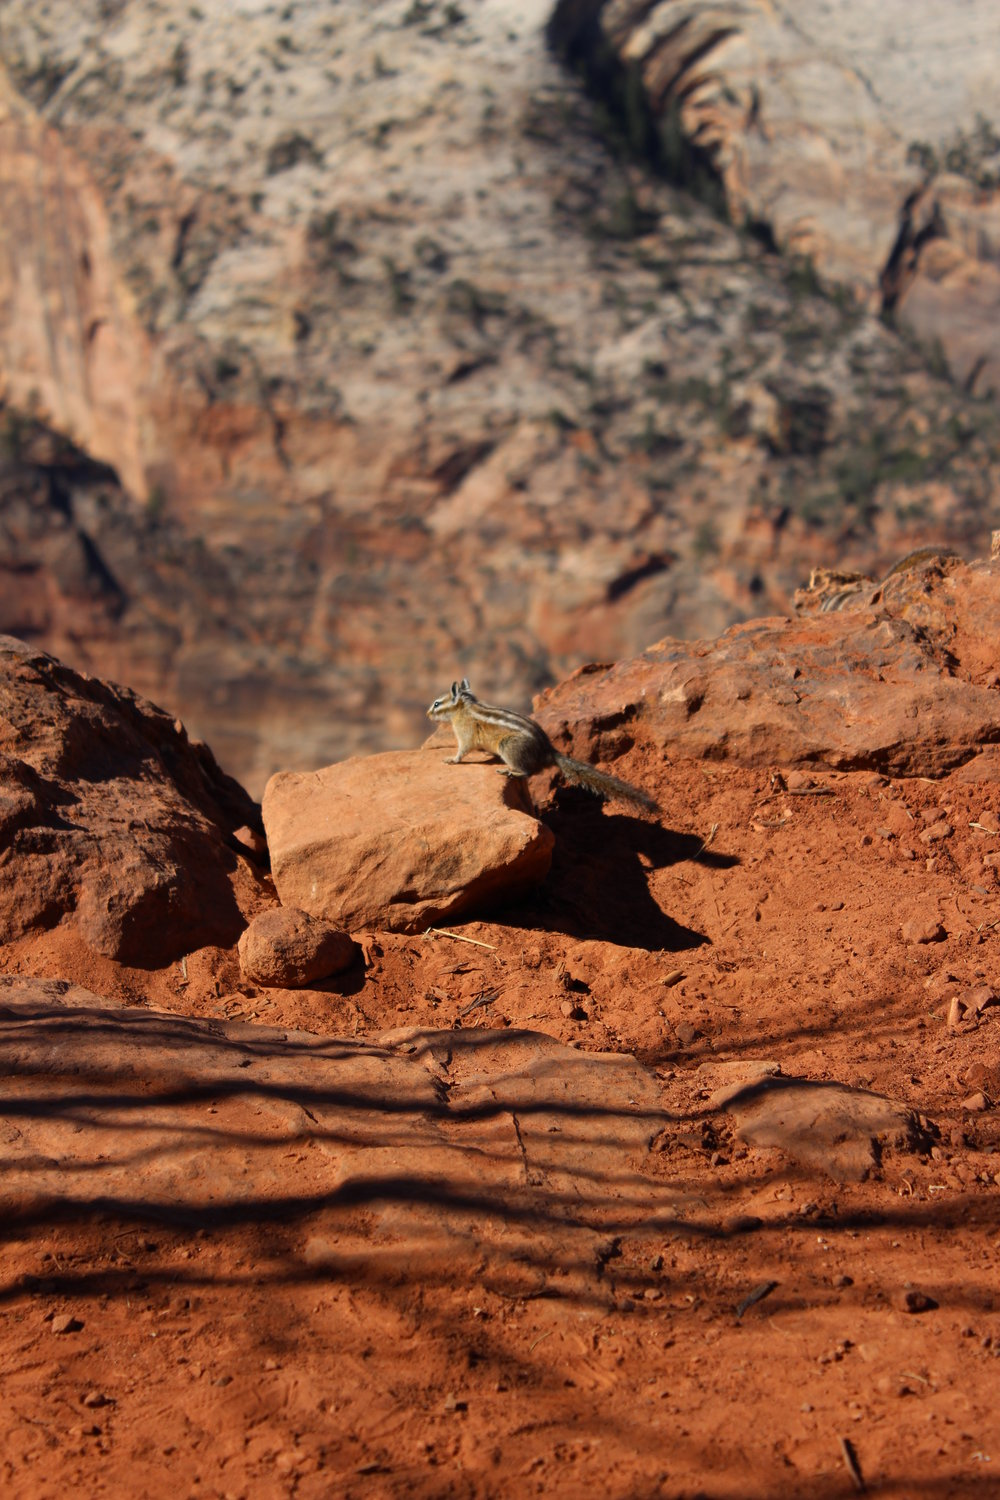 One of the many chipmunks we saw in Zion